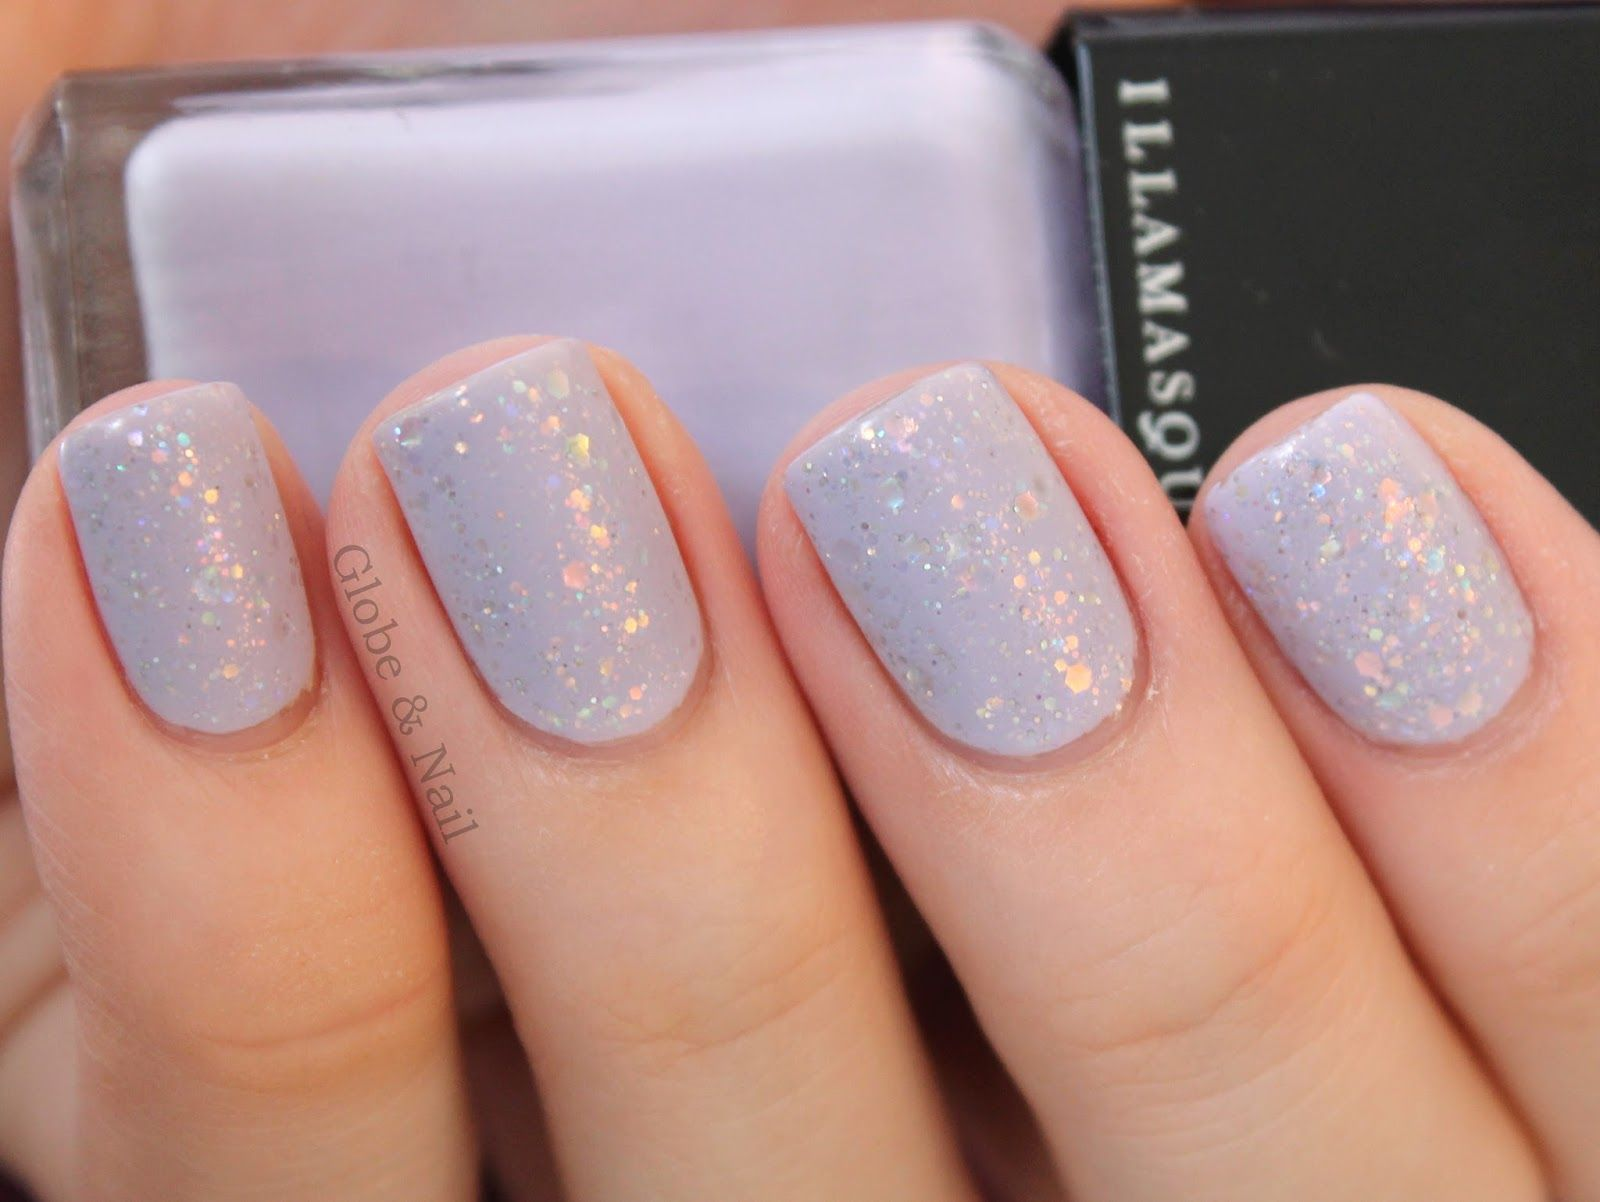 Lilac nails with iridescent glitter topper, matted | Nails - Art ...